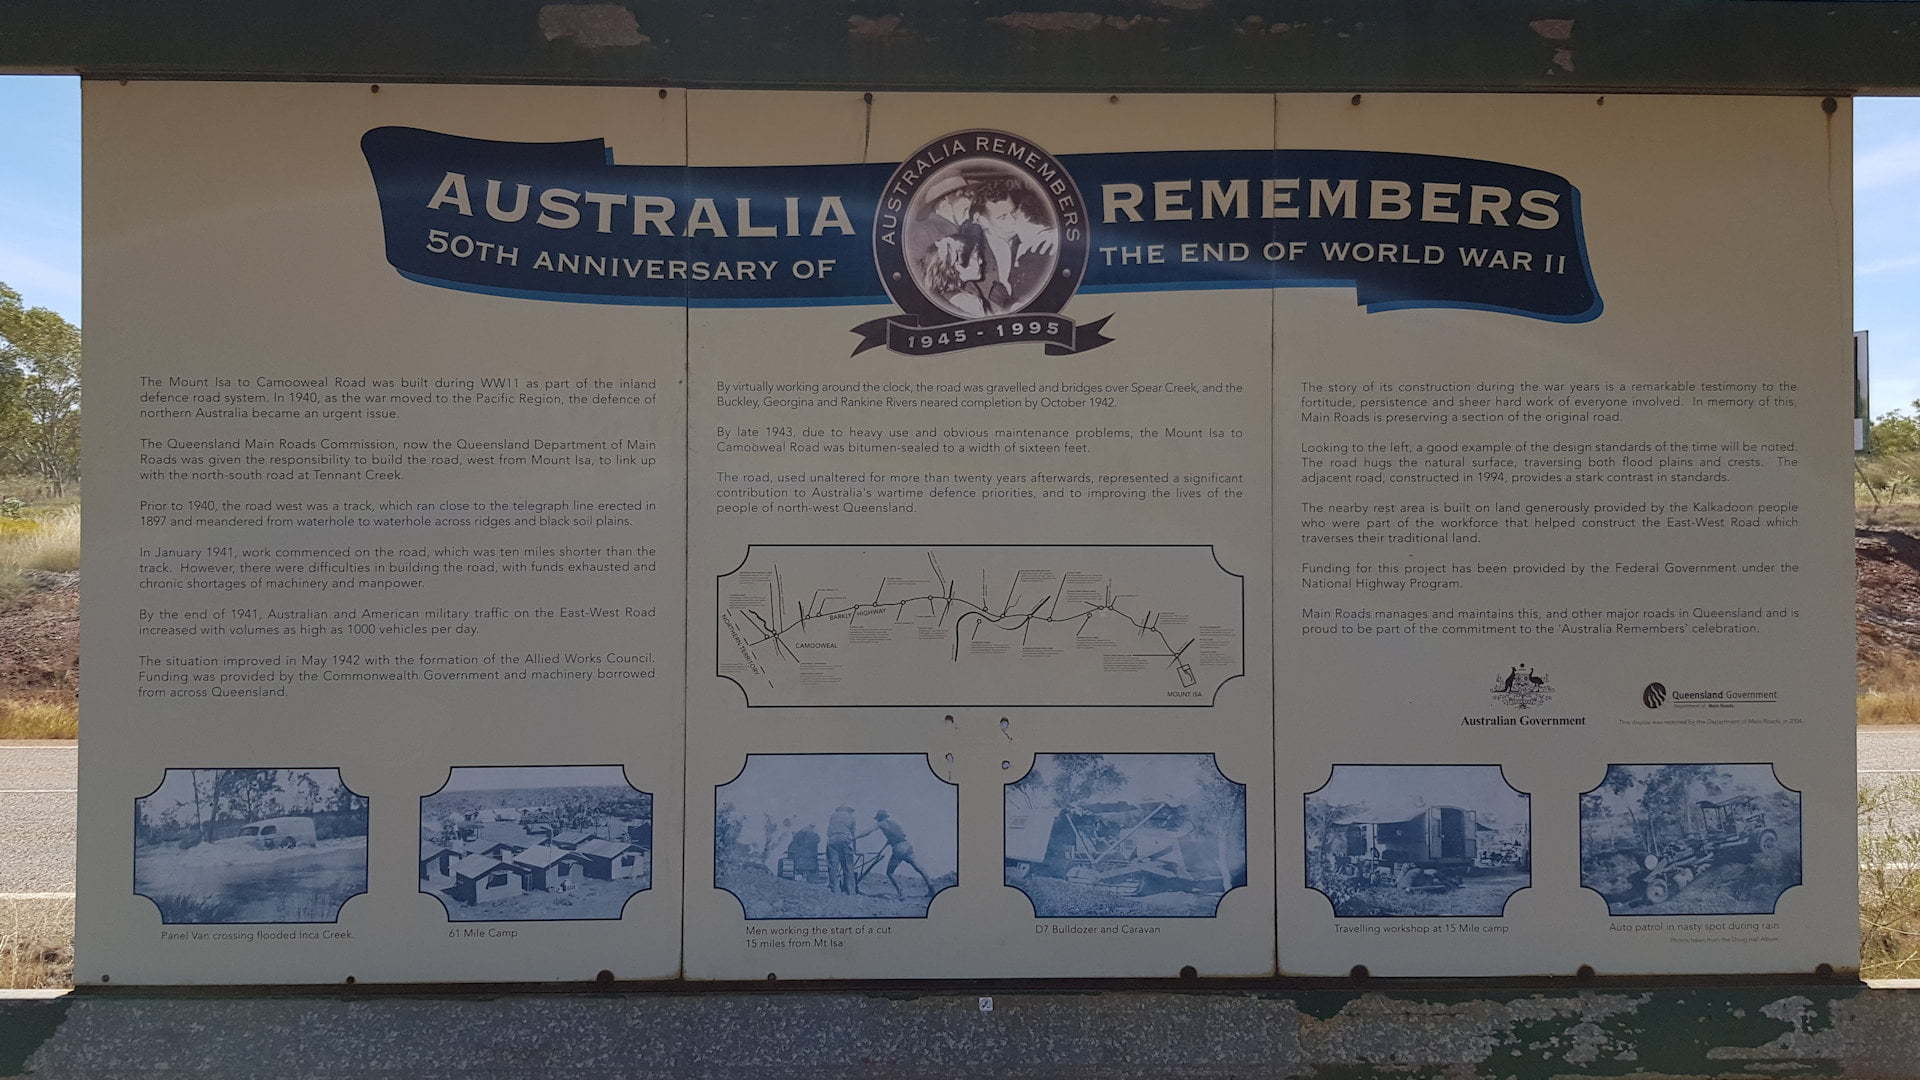 Australia Remembers, World War II Historical Site